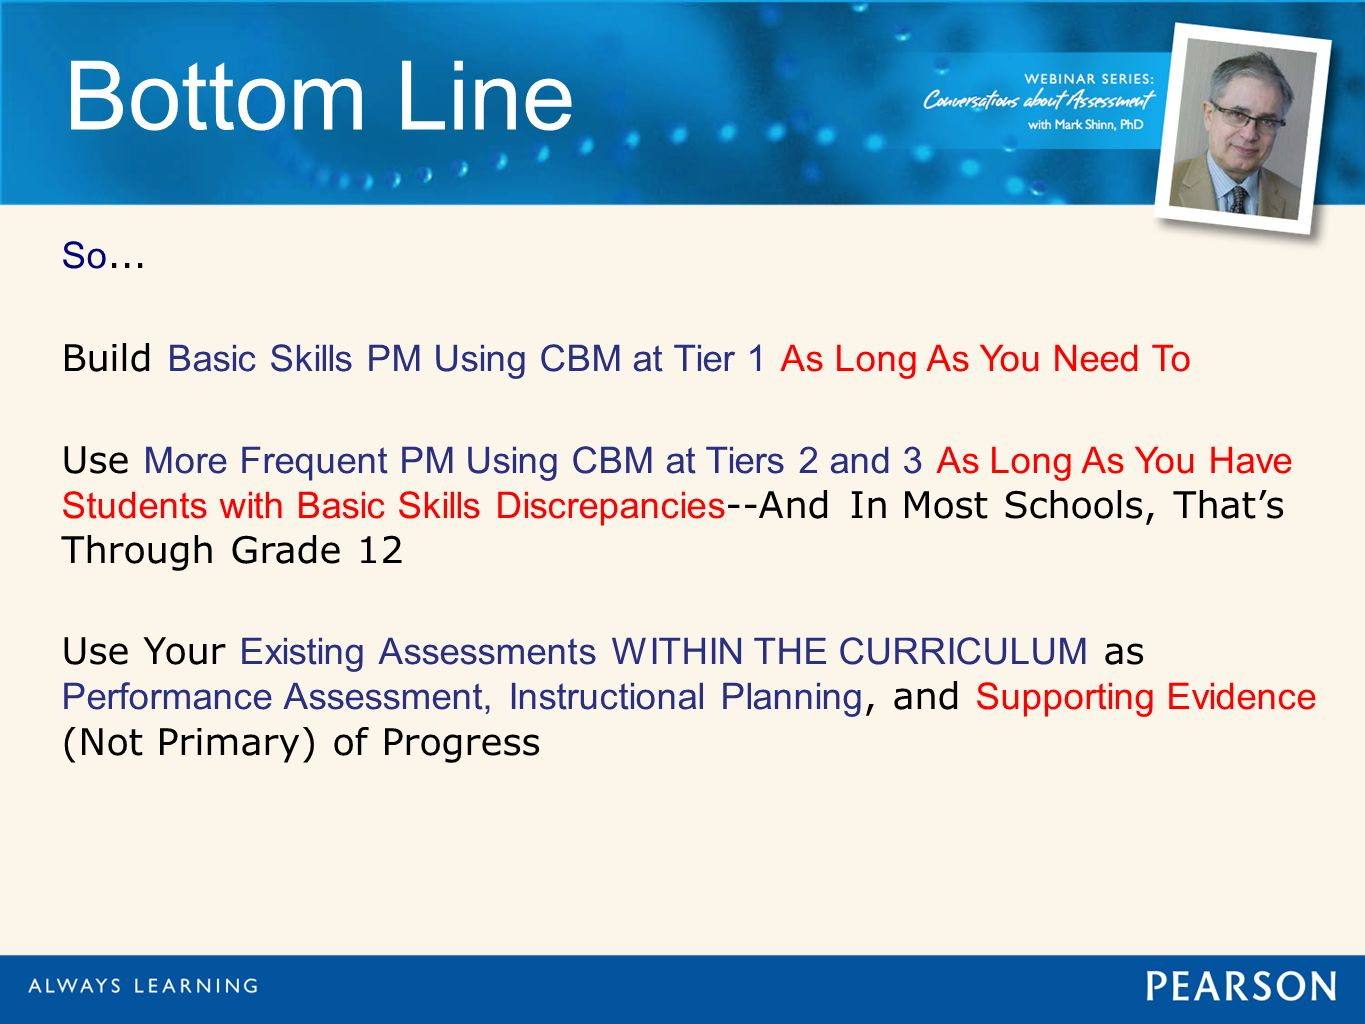 Bottom Line So... Build Basic Skills PM Using CBM at Tier 1 As Long As You Need To Use More Frequent PM Using CBM at Tiers 2 and 3 As Long As You Have